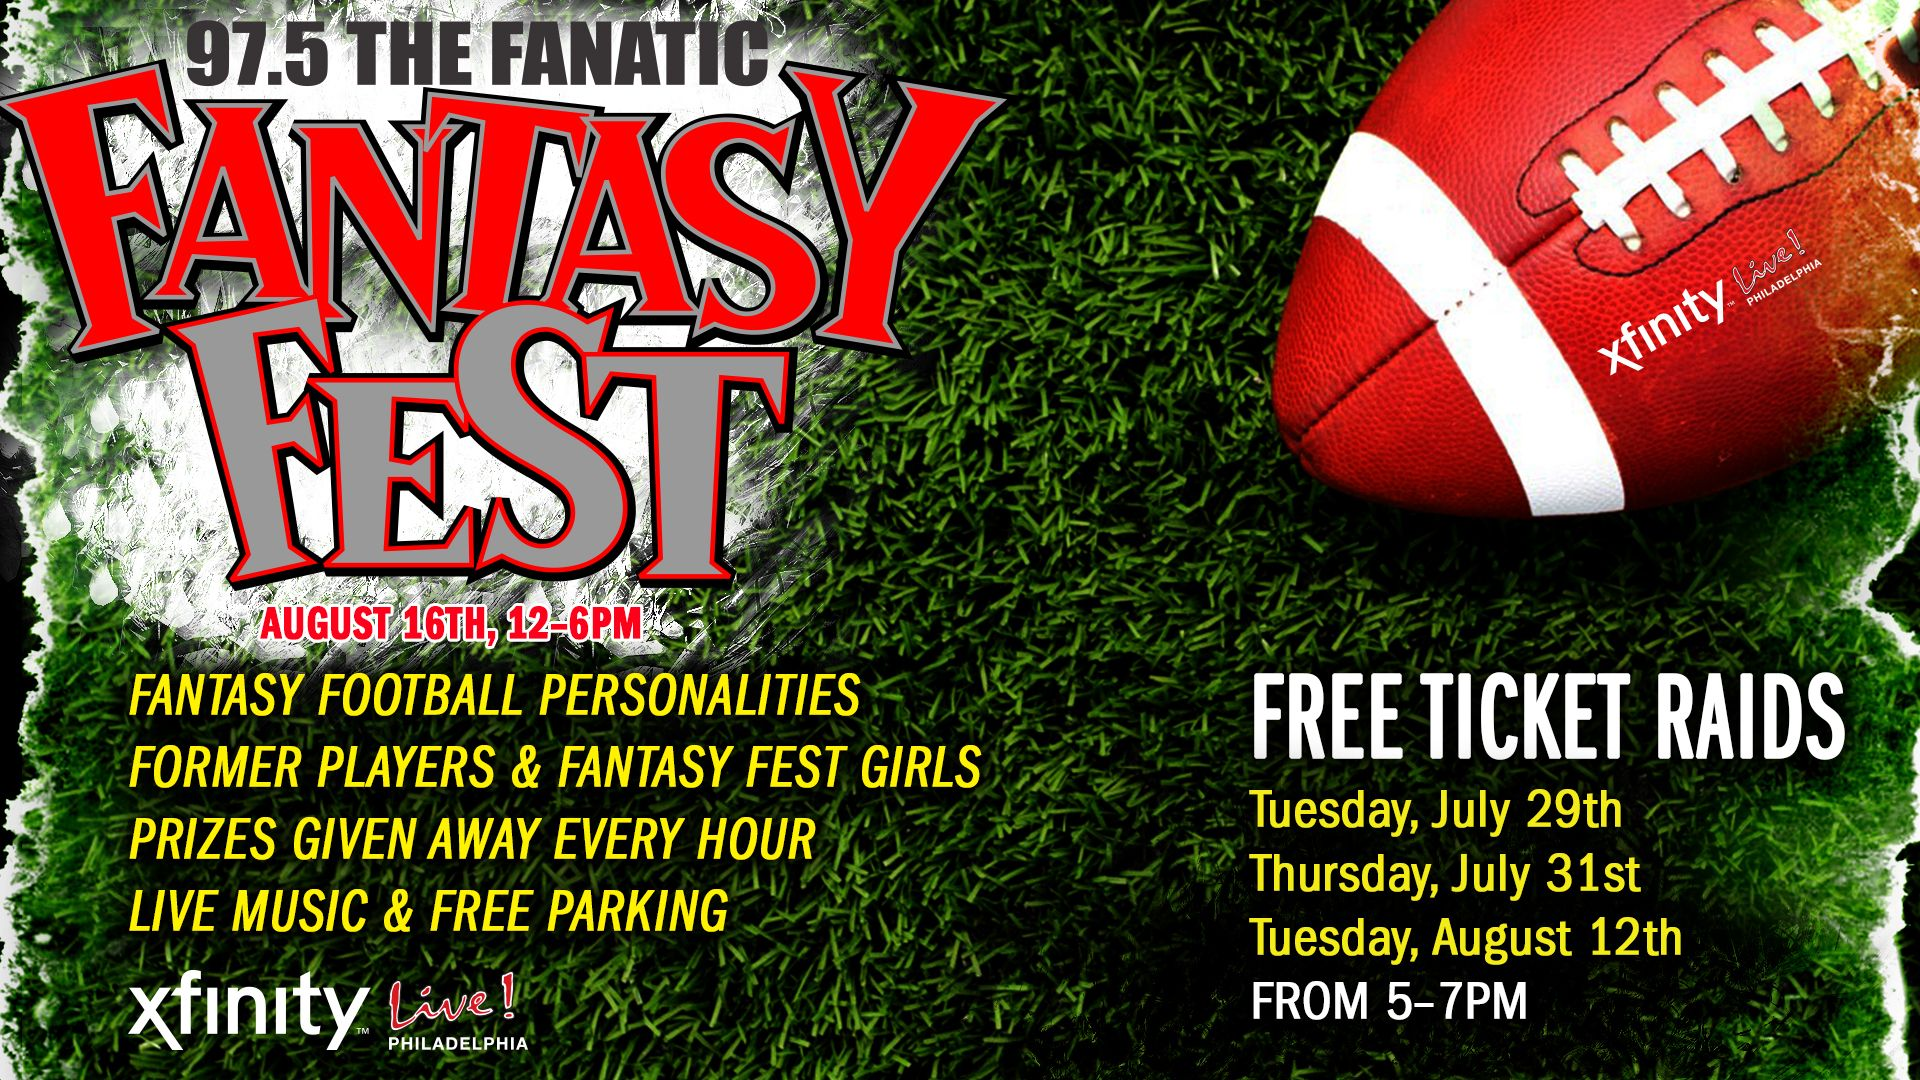 Be sure to stop by our Fantasy Football Fest taking place August 16th @ XFINITY Live! Philadelphia! FREE PARKING & Prizes every hour! Our last ticket raid is TONIGHT! See you there